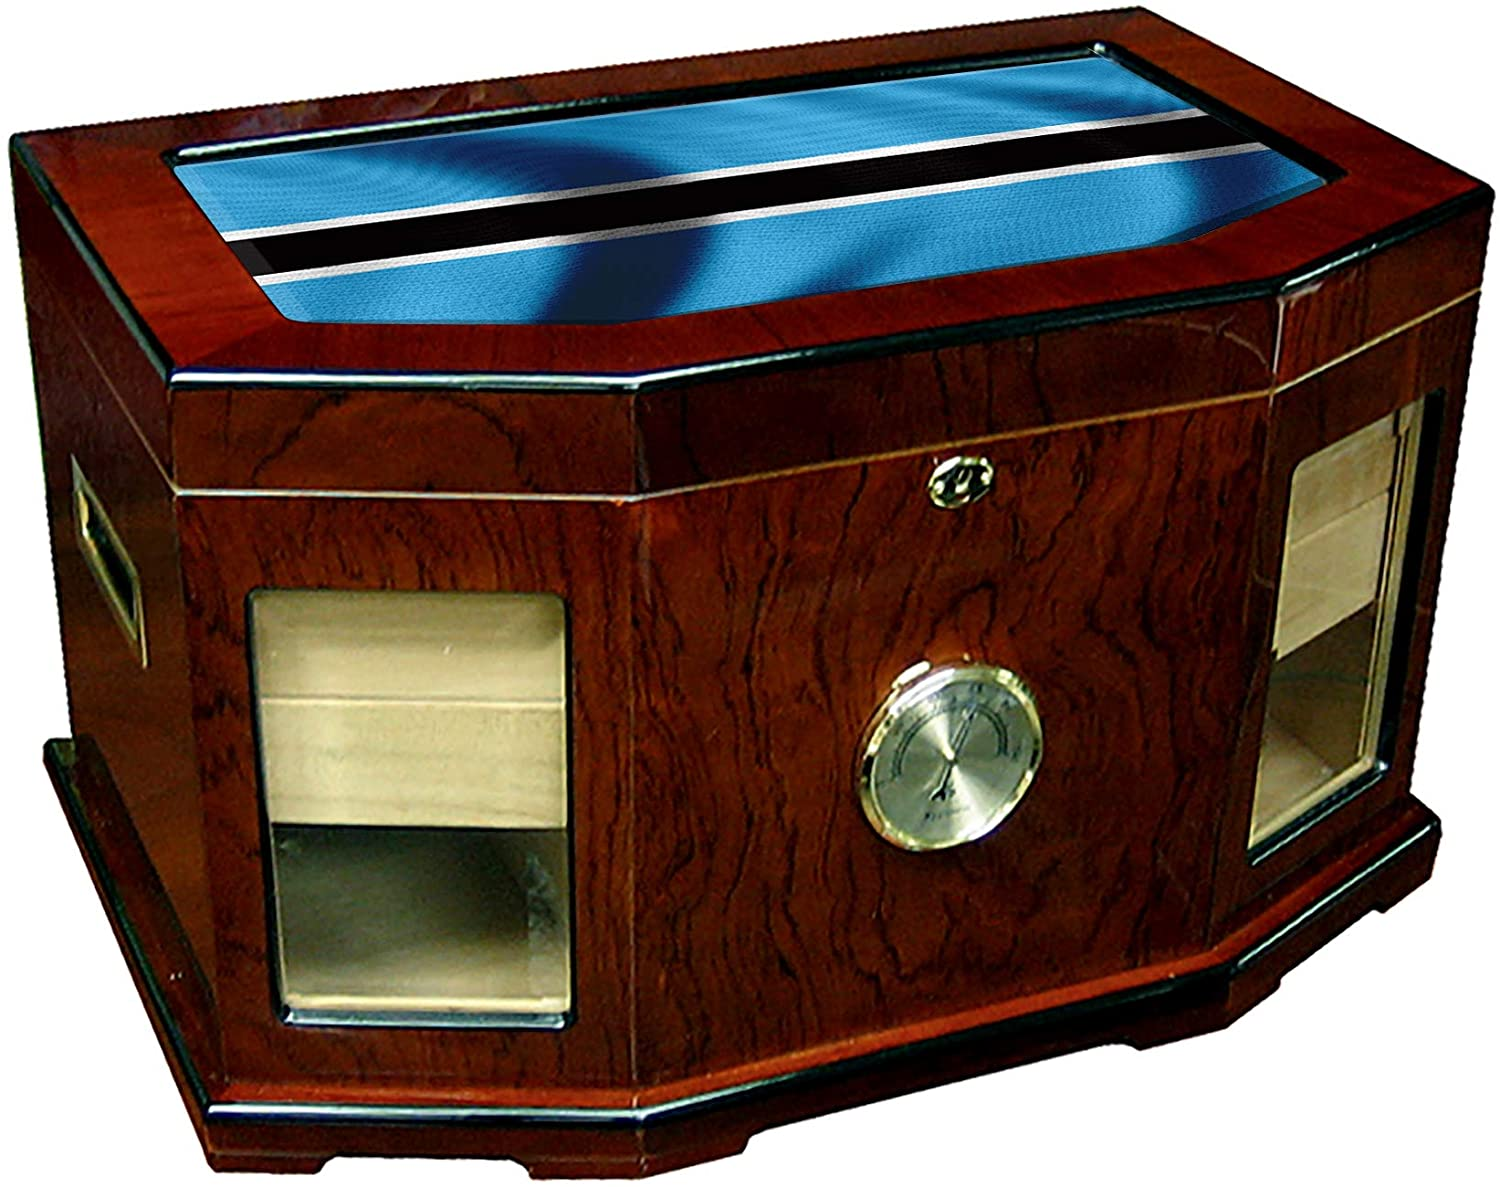 Large Premium Desktop Humidor - Glass Top - Flag of Botswana (Botswanan) - Waves Design - 300 Cigar Capacity - Cedar Lined with Two humidifiers & Large Front Mounted Hygrometer.